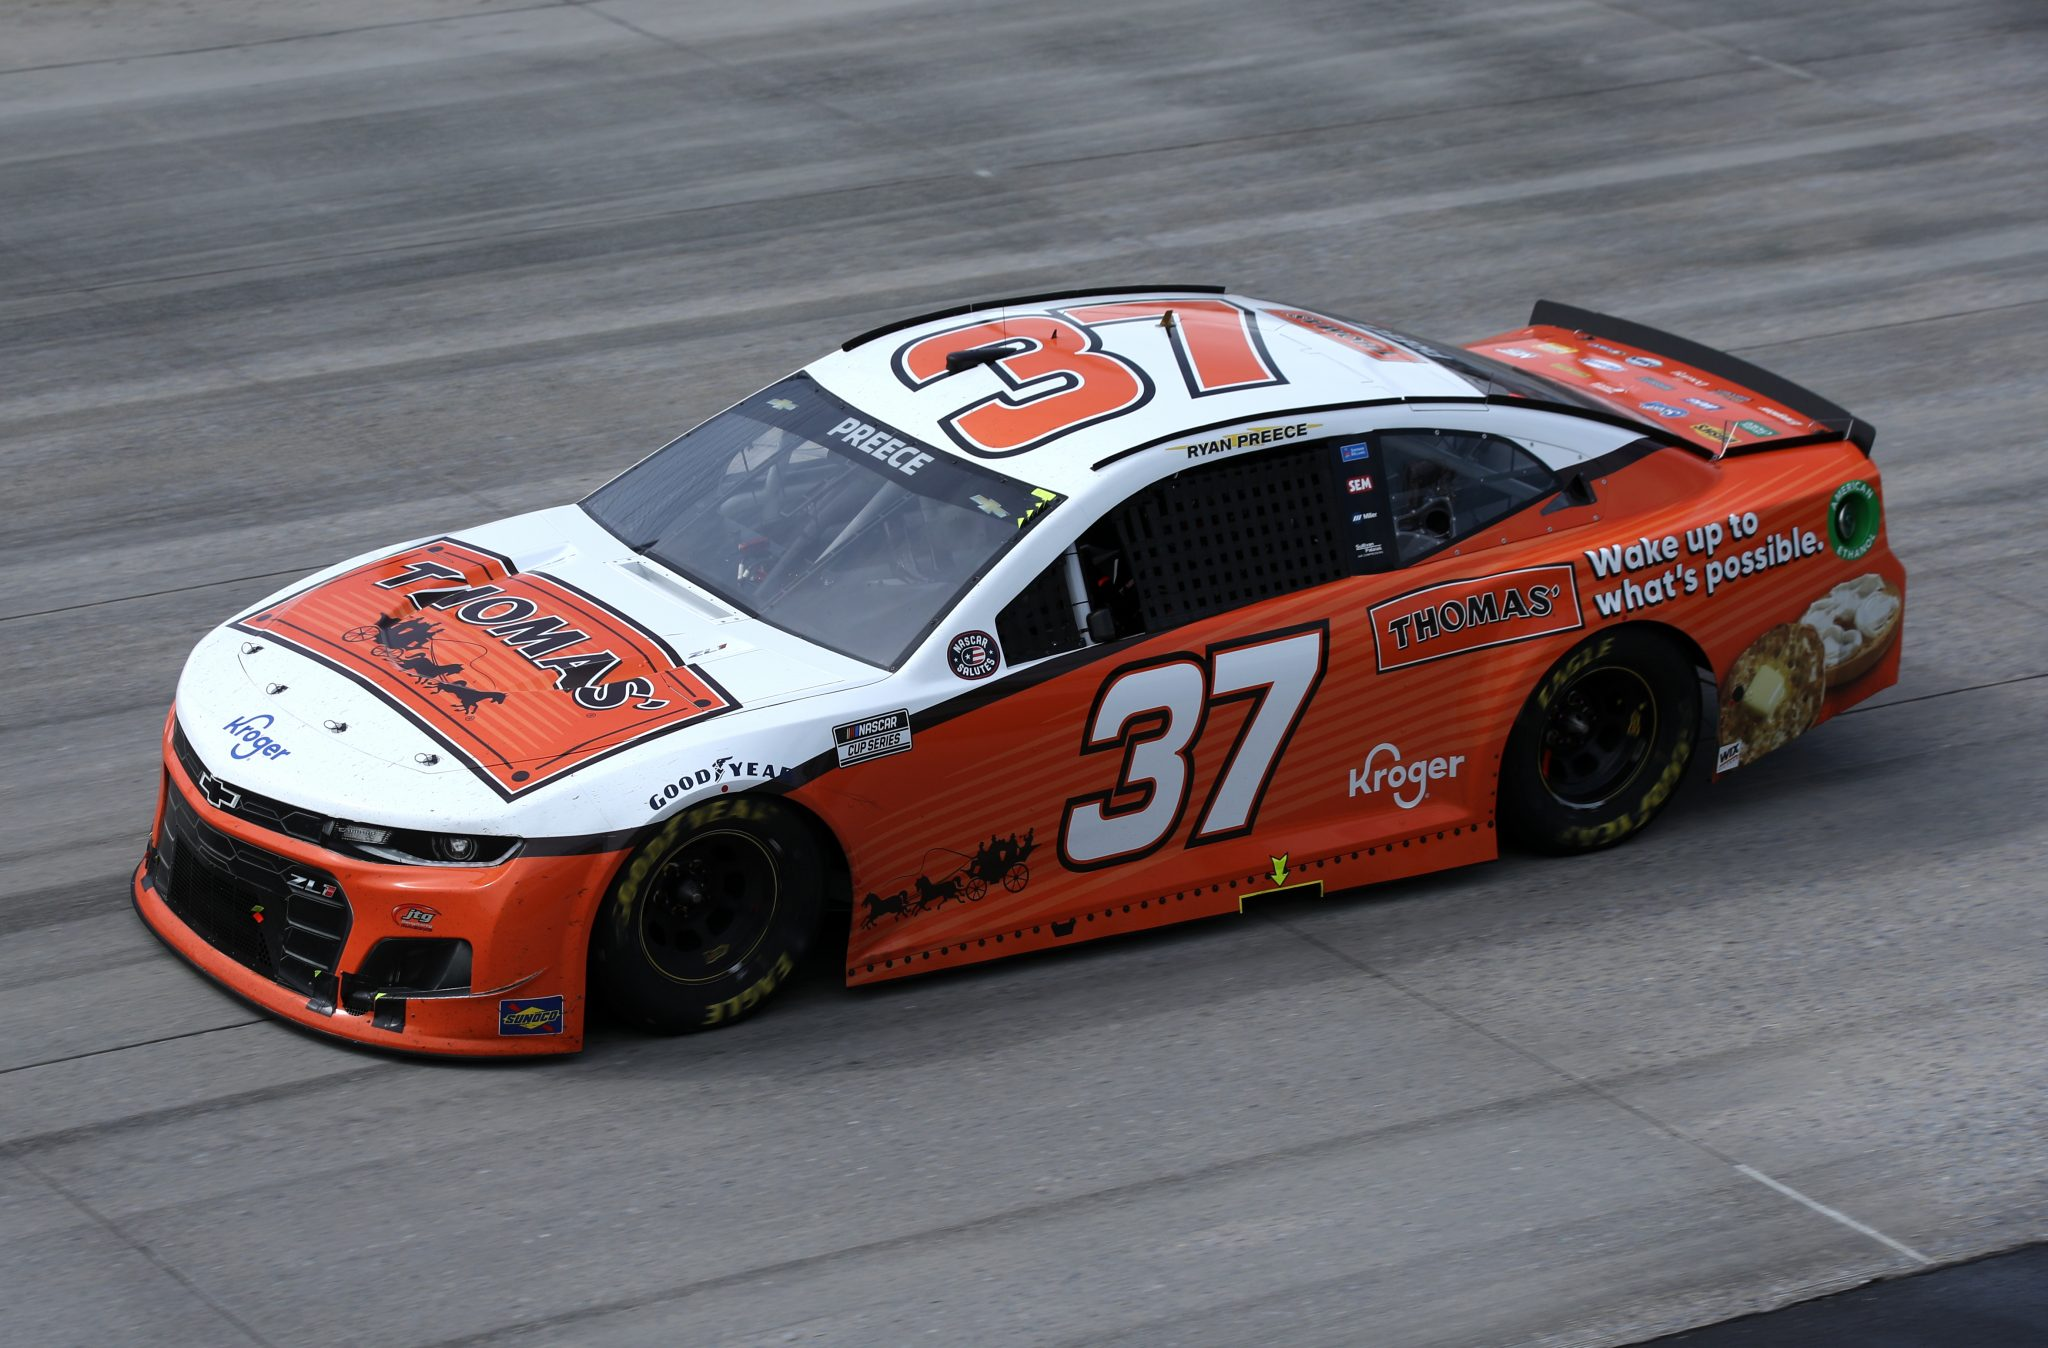 DOVER, DELAWARE - MAY 16: Ryan Preece, driver of the #37 Thomas' Chevrolet, races during the NASCAR Cup Series Drydene 400 at Dover International Speedway on May 16, 2021 in Dover, Delaware. (Photo by Sean Gardner/Getty Images) | Getty Images